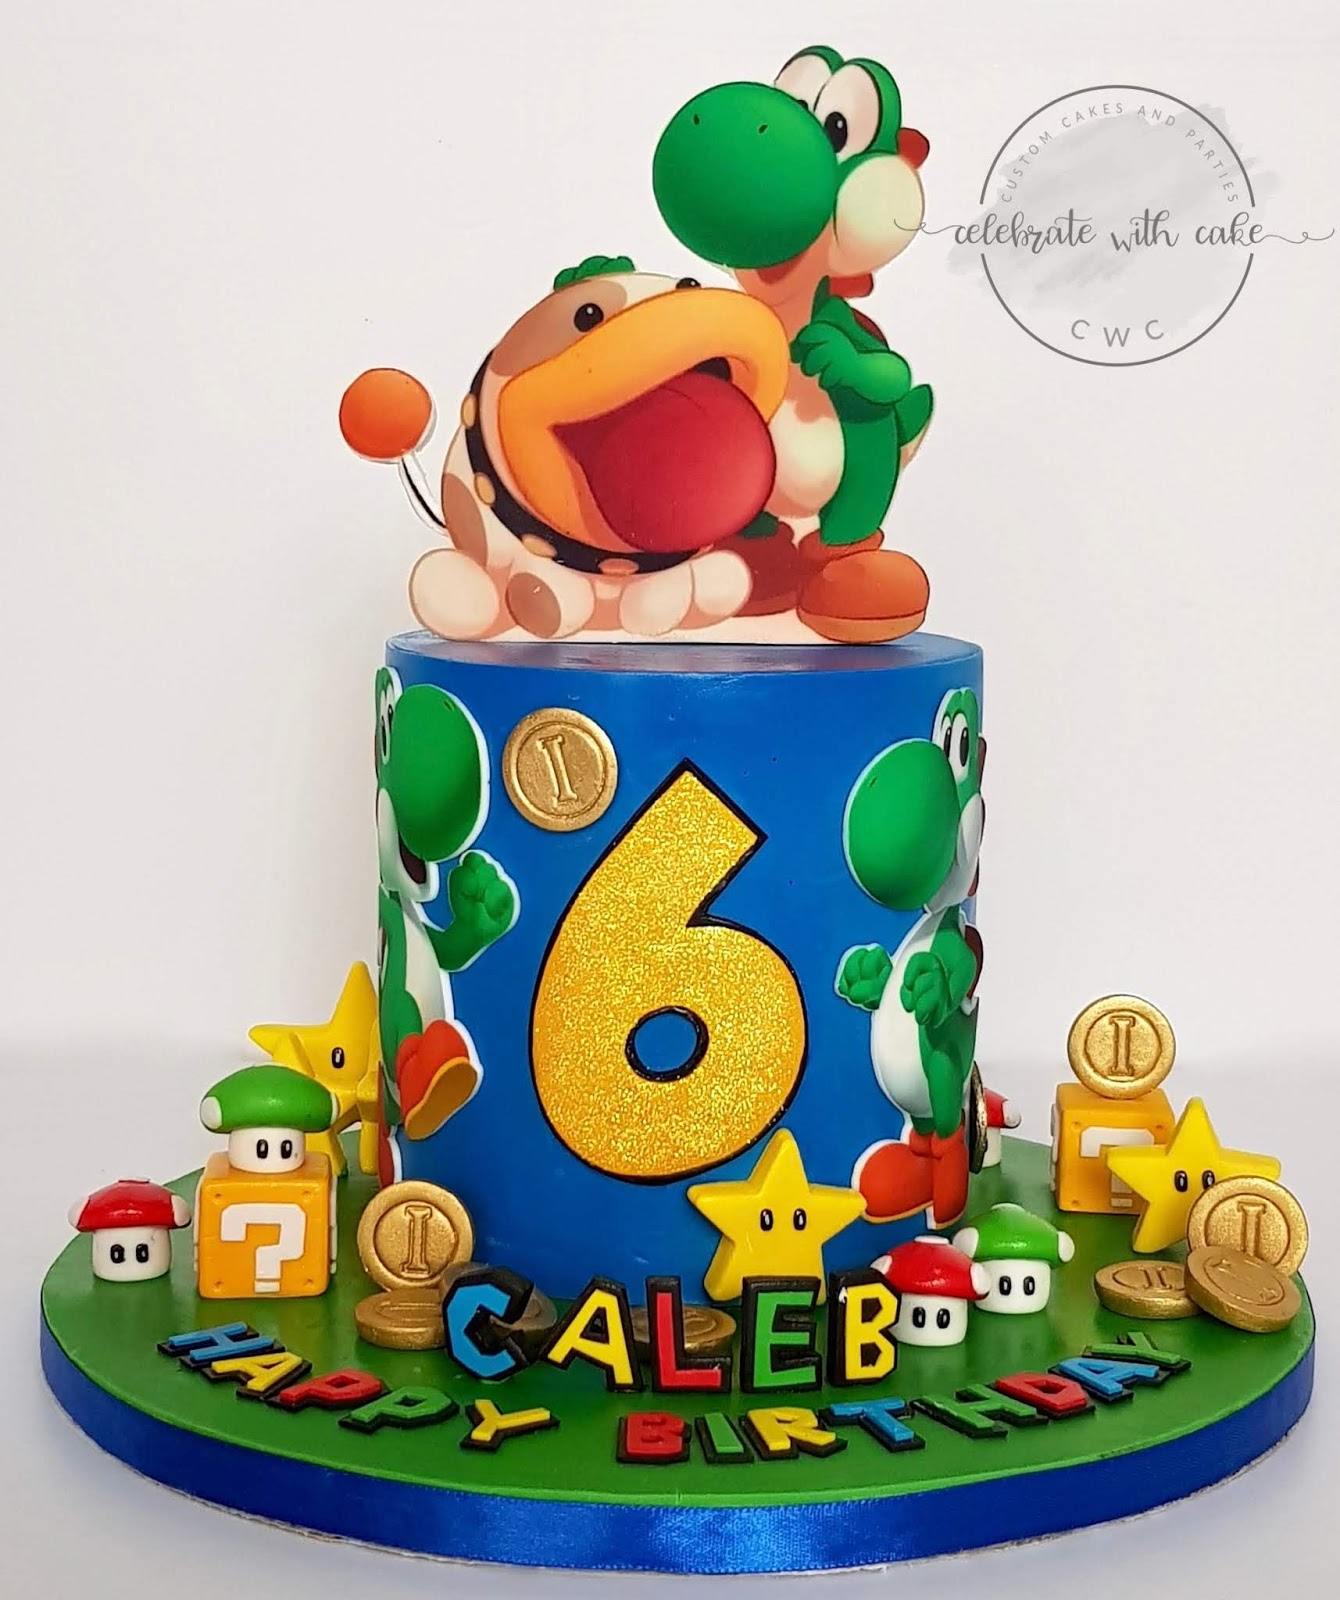 Admirable Celebrate With Cake Super Mario Featuring Yoshi And Poochy Cake Funny Birthday Cards Online Necthendildamsfinfo